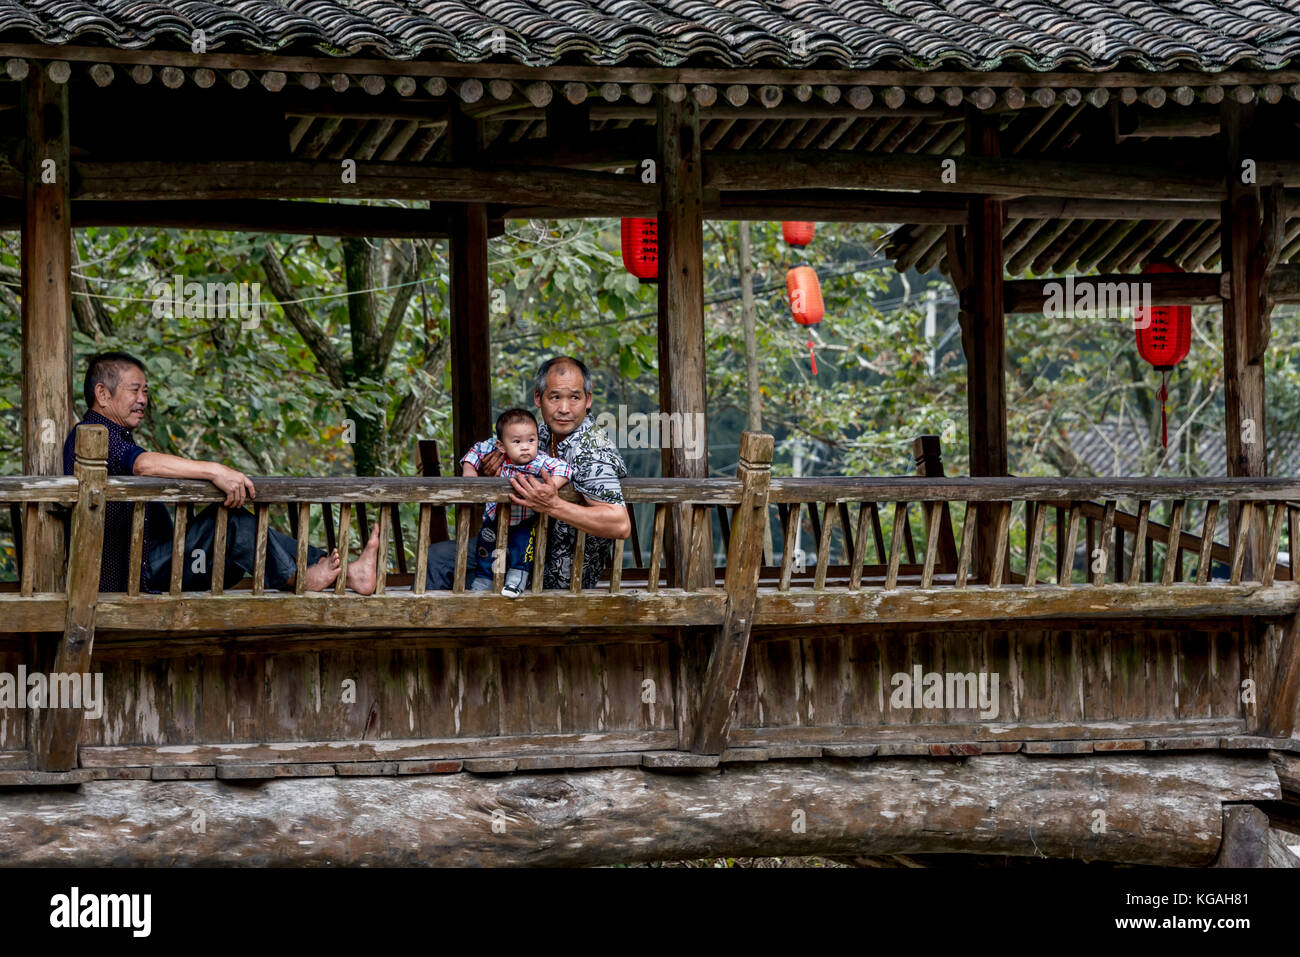 Chinese grandfathers or older men keep cool on the covered bridge with baby boy in Lingshang Renjia or Linkeng ancient - Stock Image